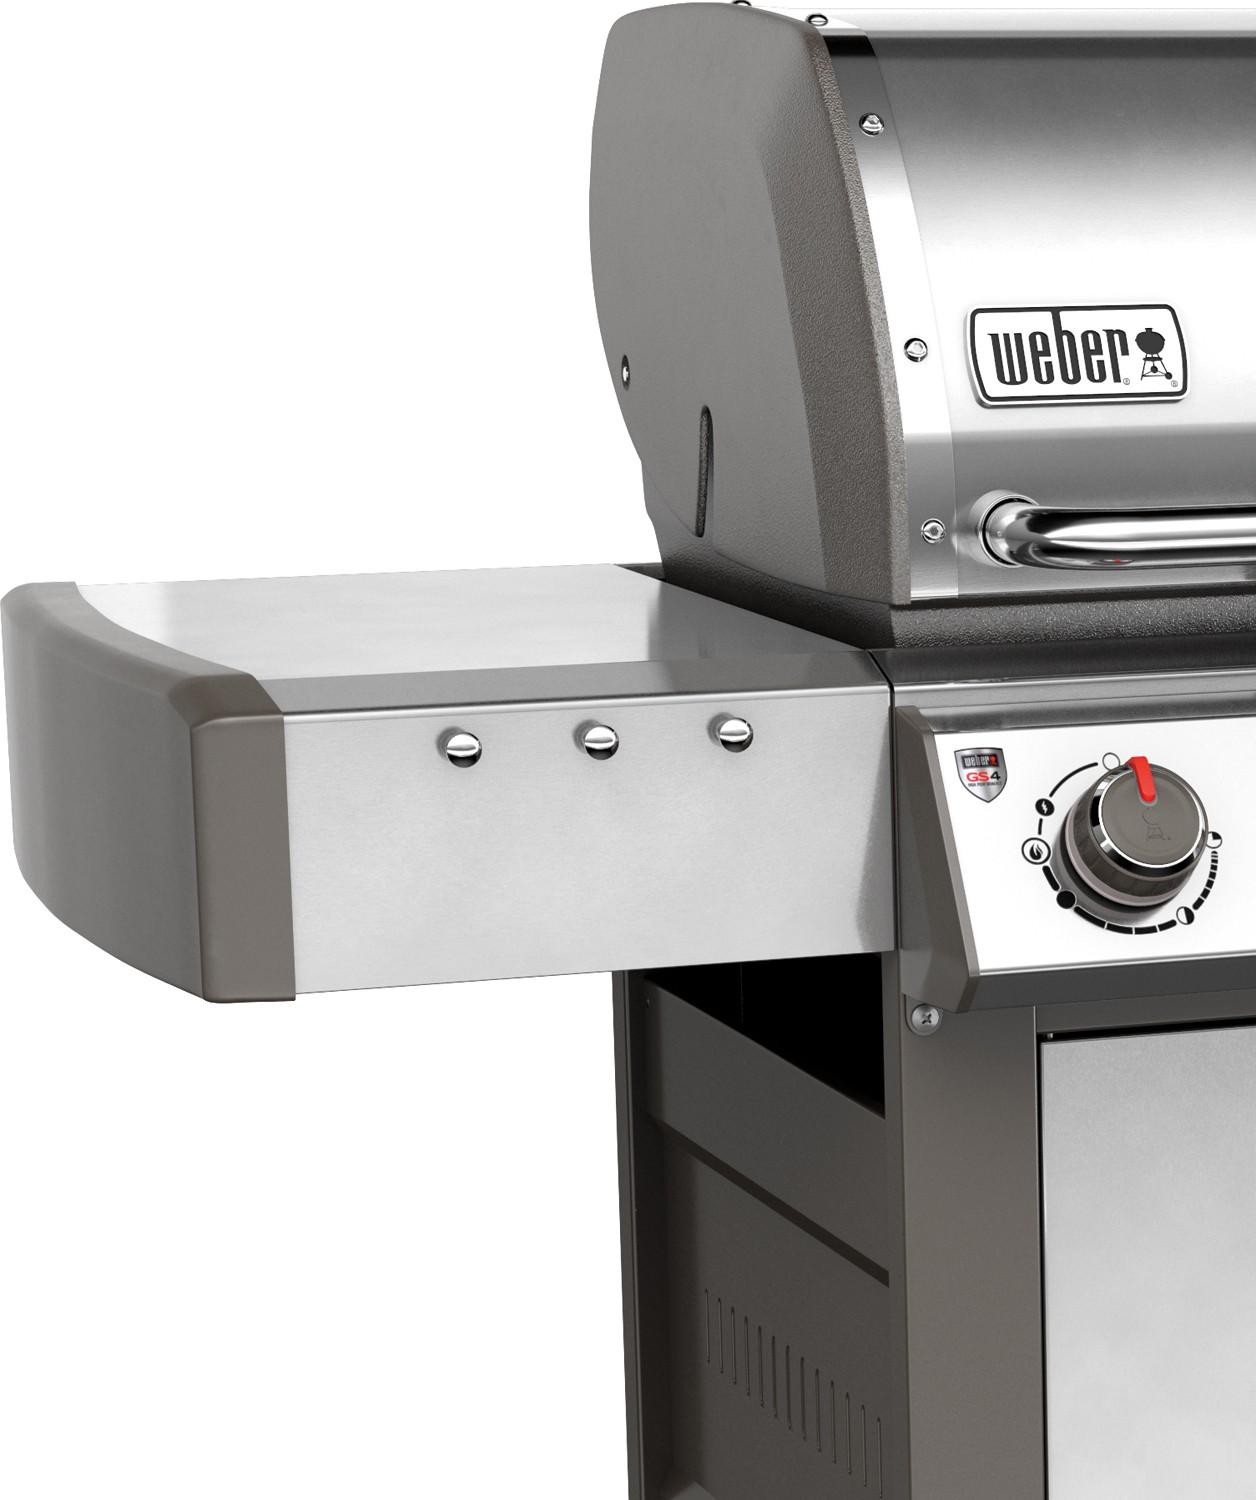 main feature feature feature feature feature feature feature - Small Gas Grills